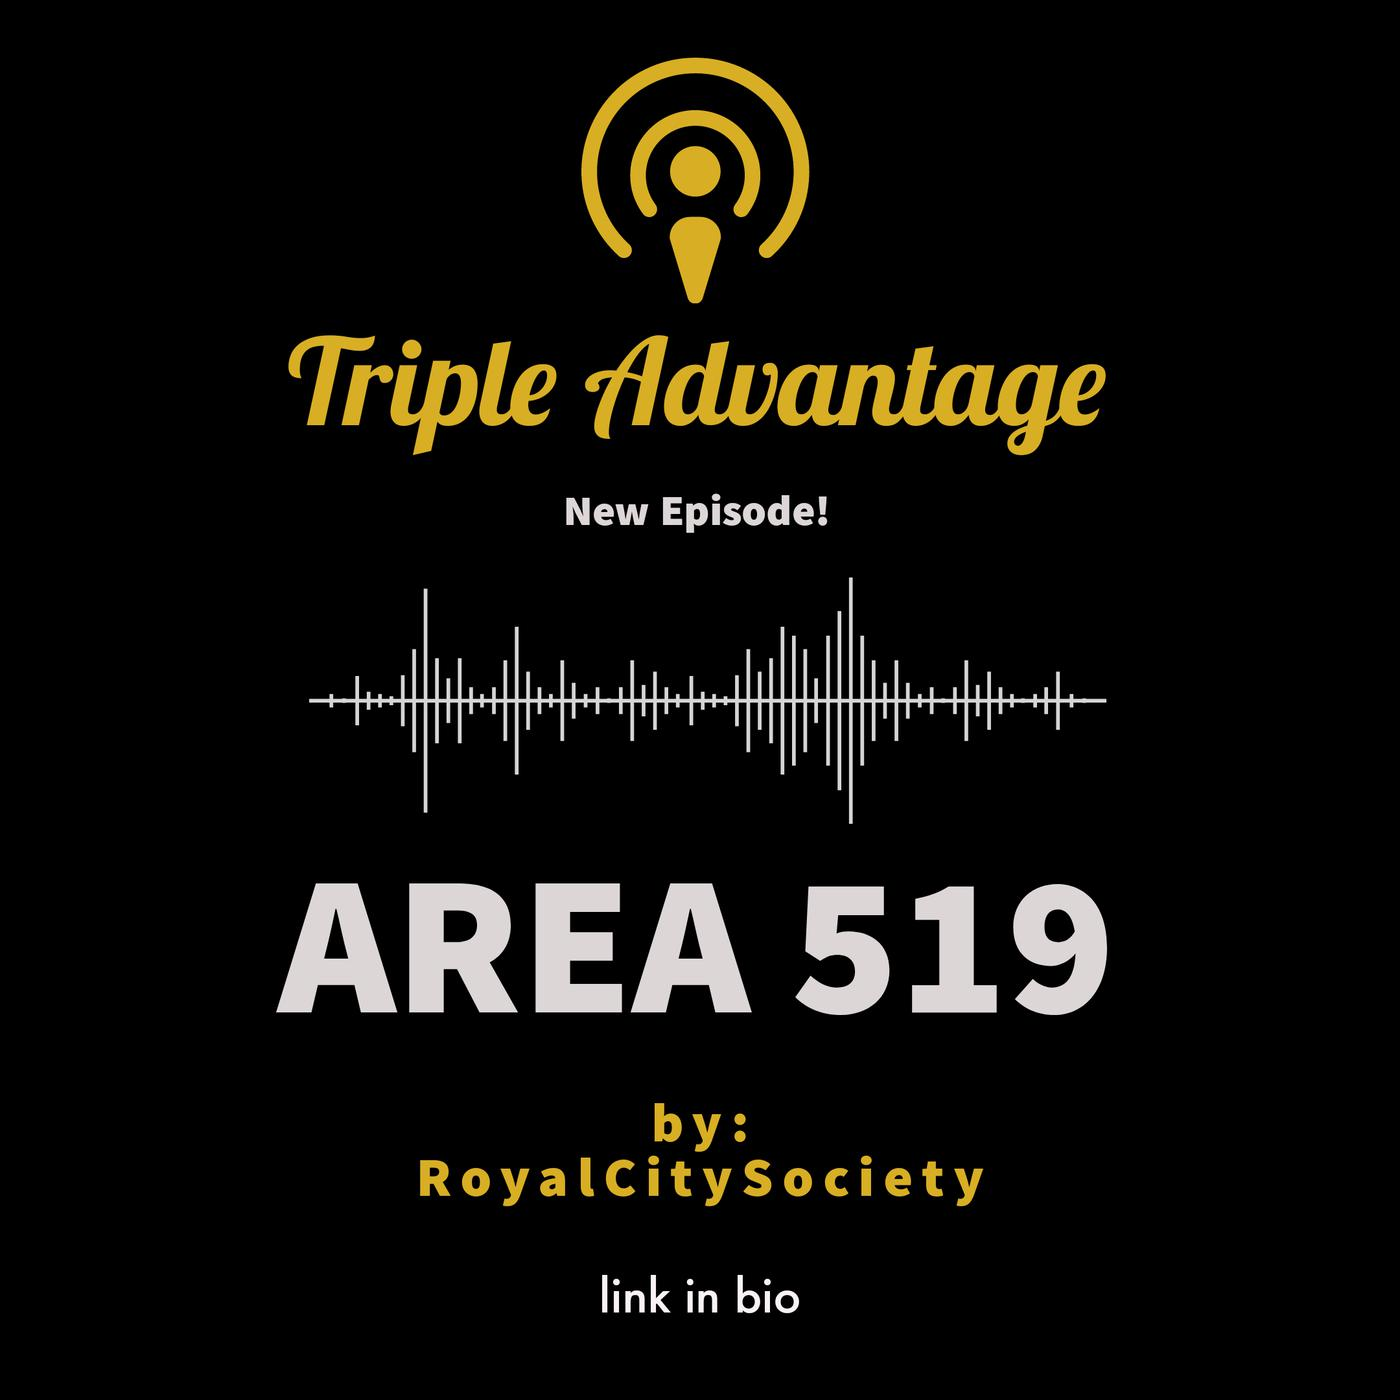 Ep. 7 - AREA 519